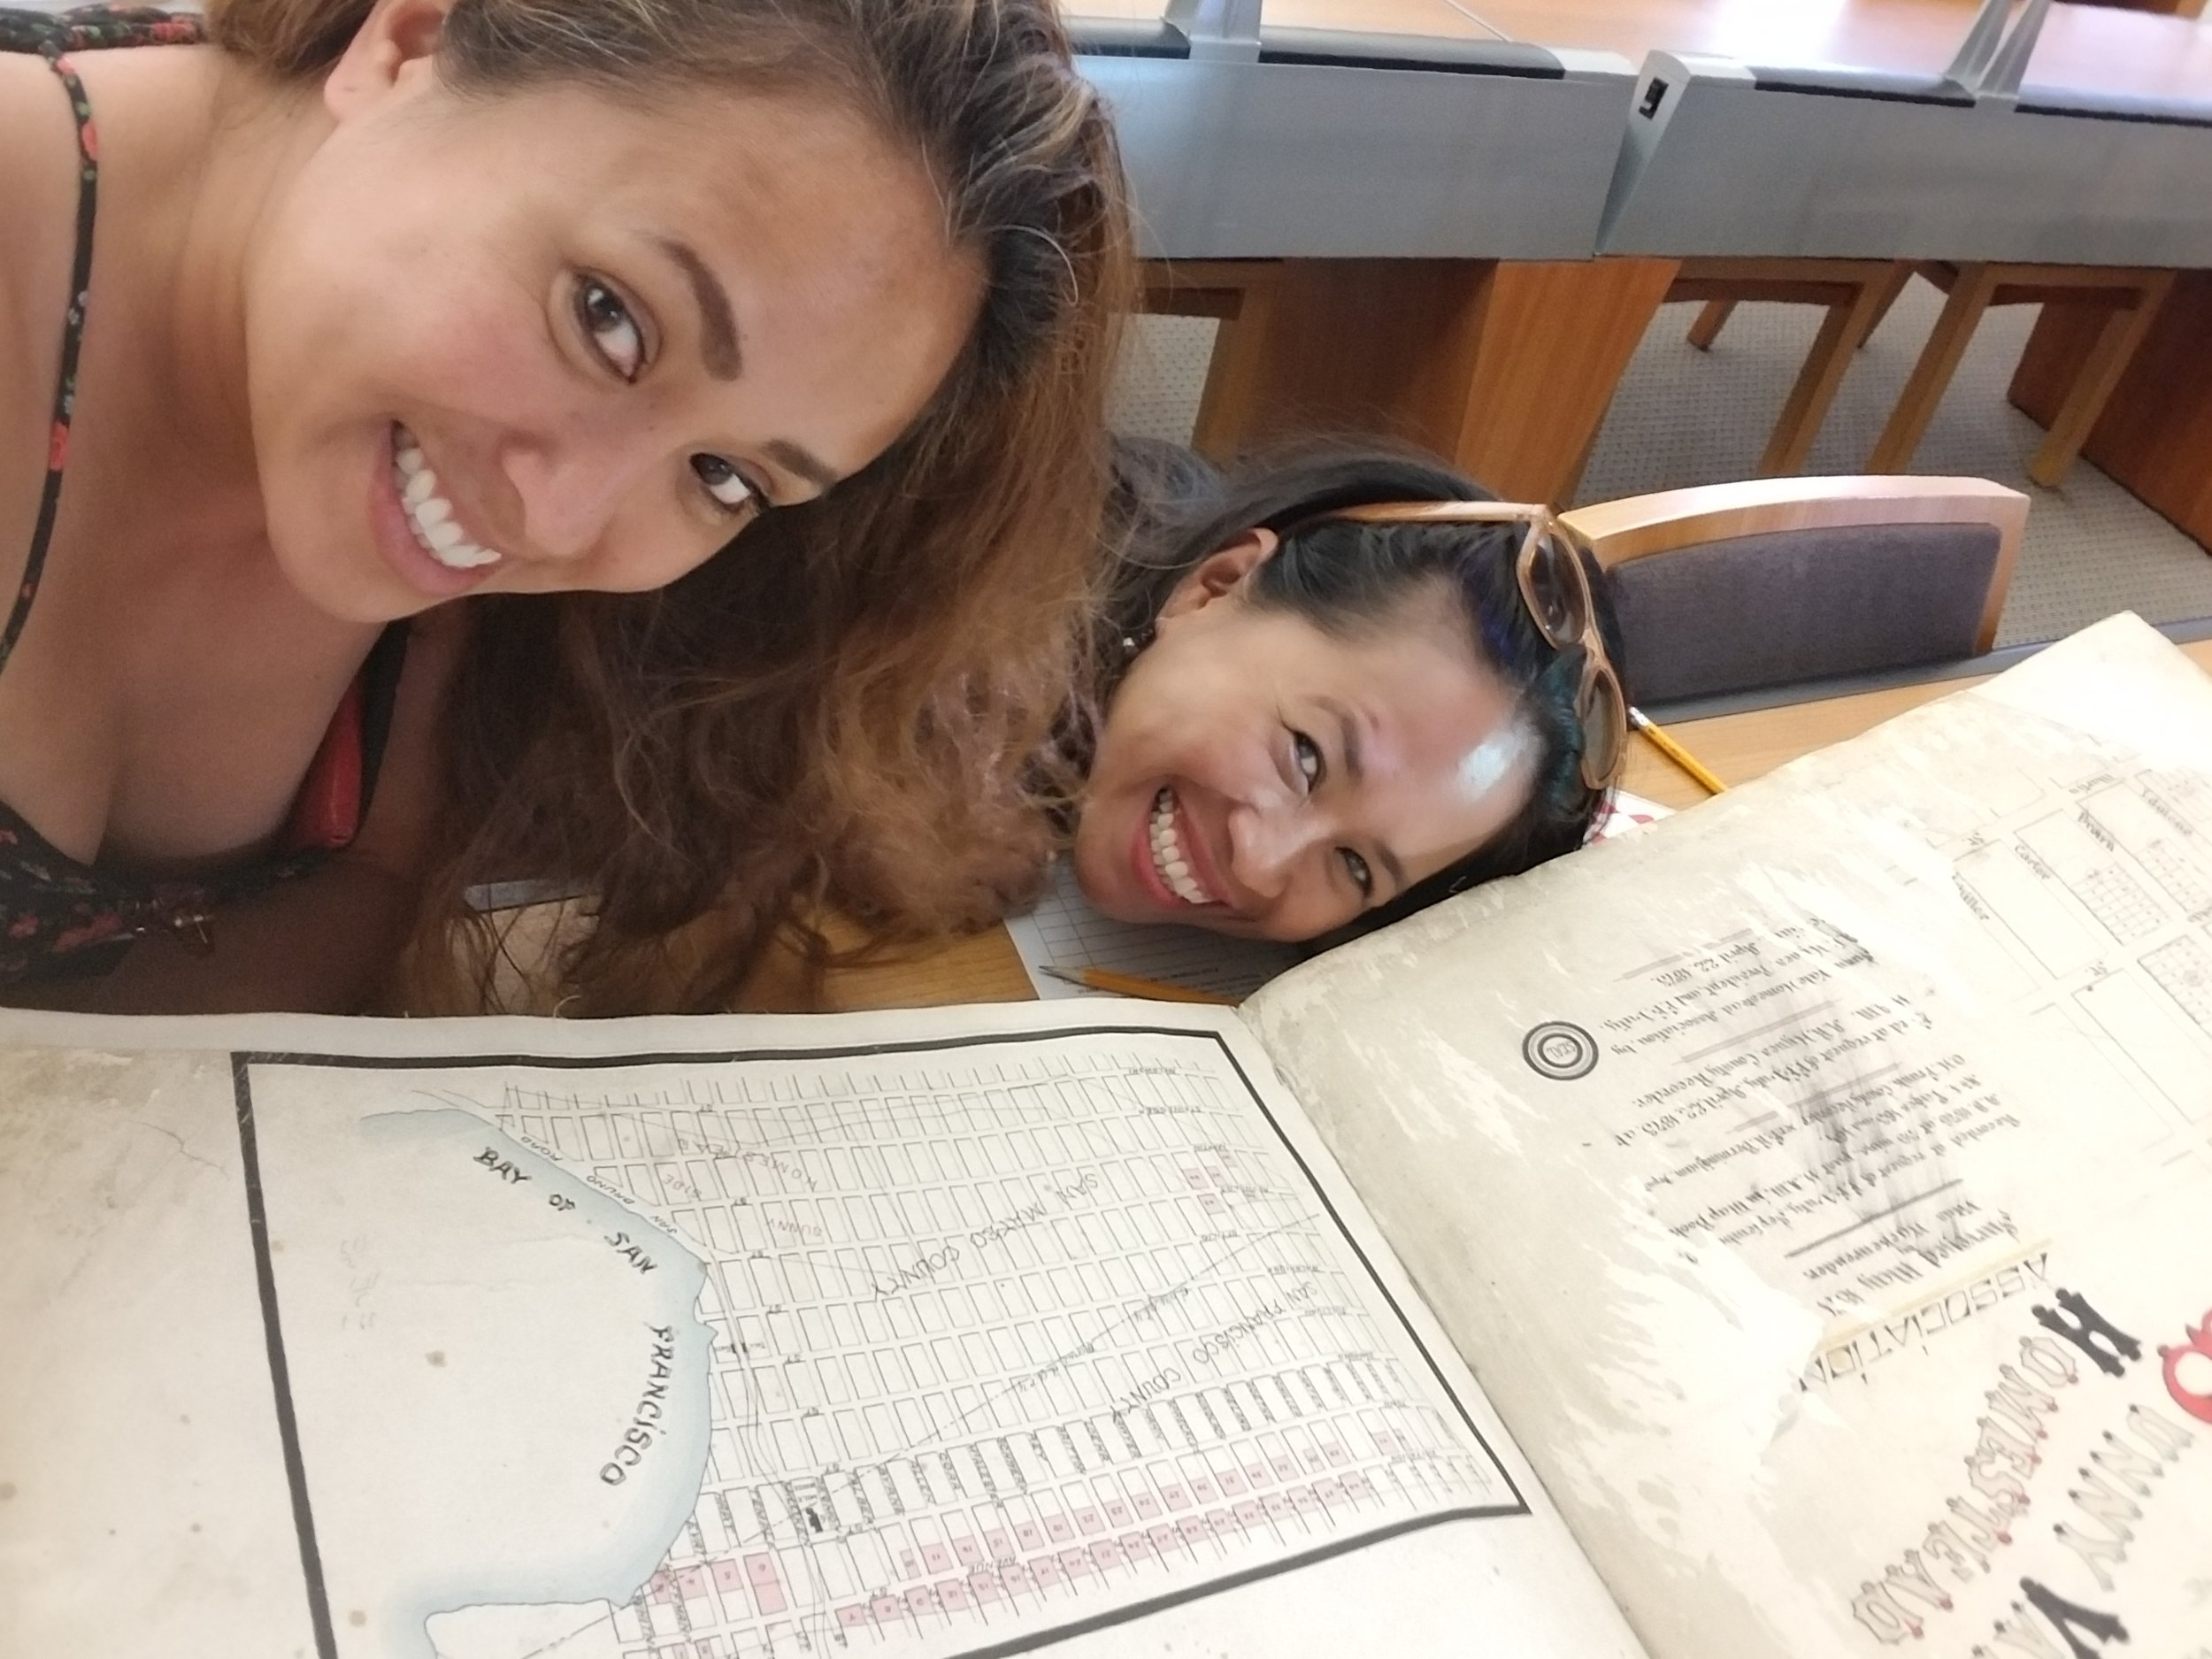 That's me and Gina going through some huge, hand-drawn maps at the History Room of the San Francisco Public Library.